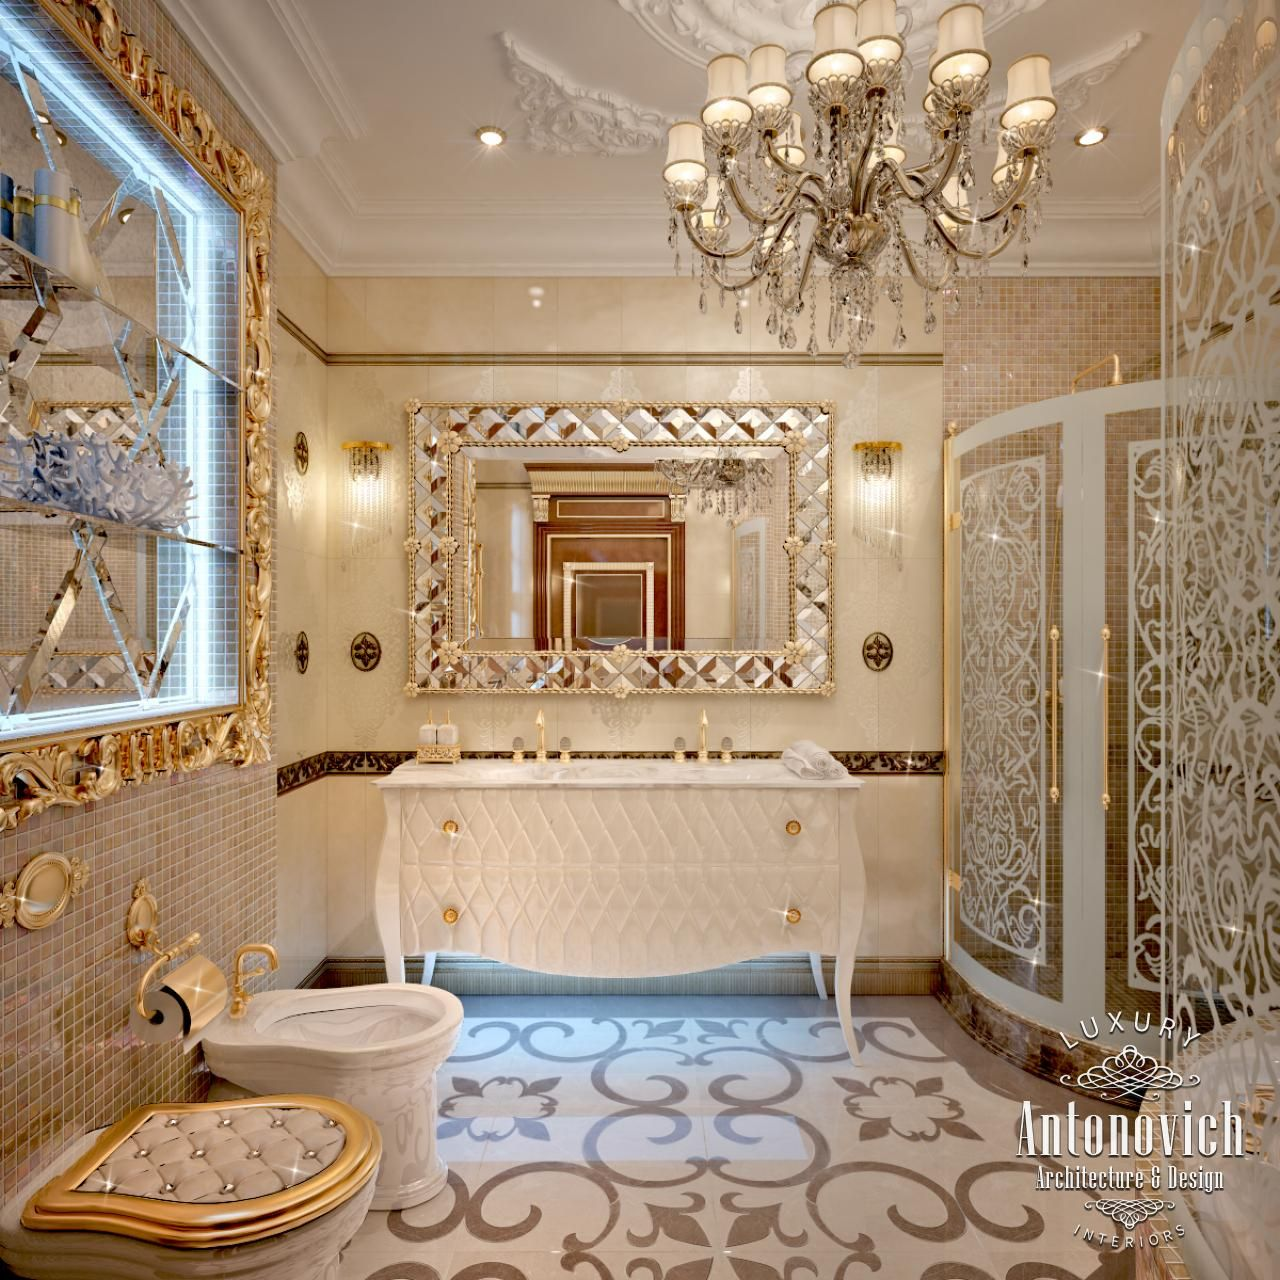 Bathroom design in dubai luxury bathroom interior photo for One agency interior design dubai